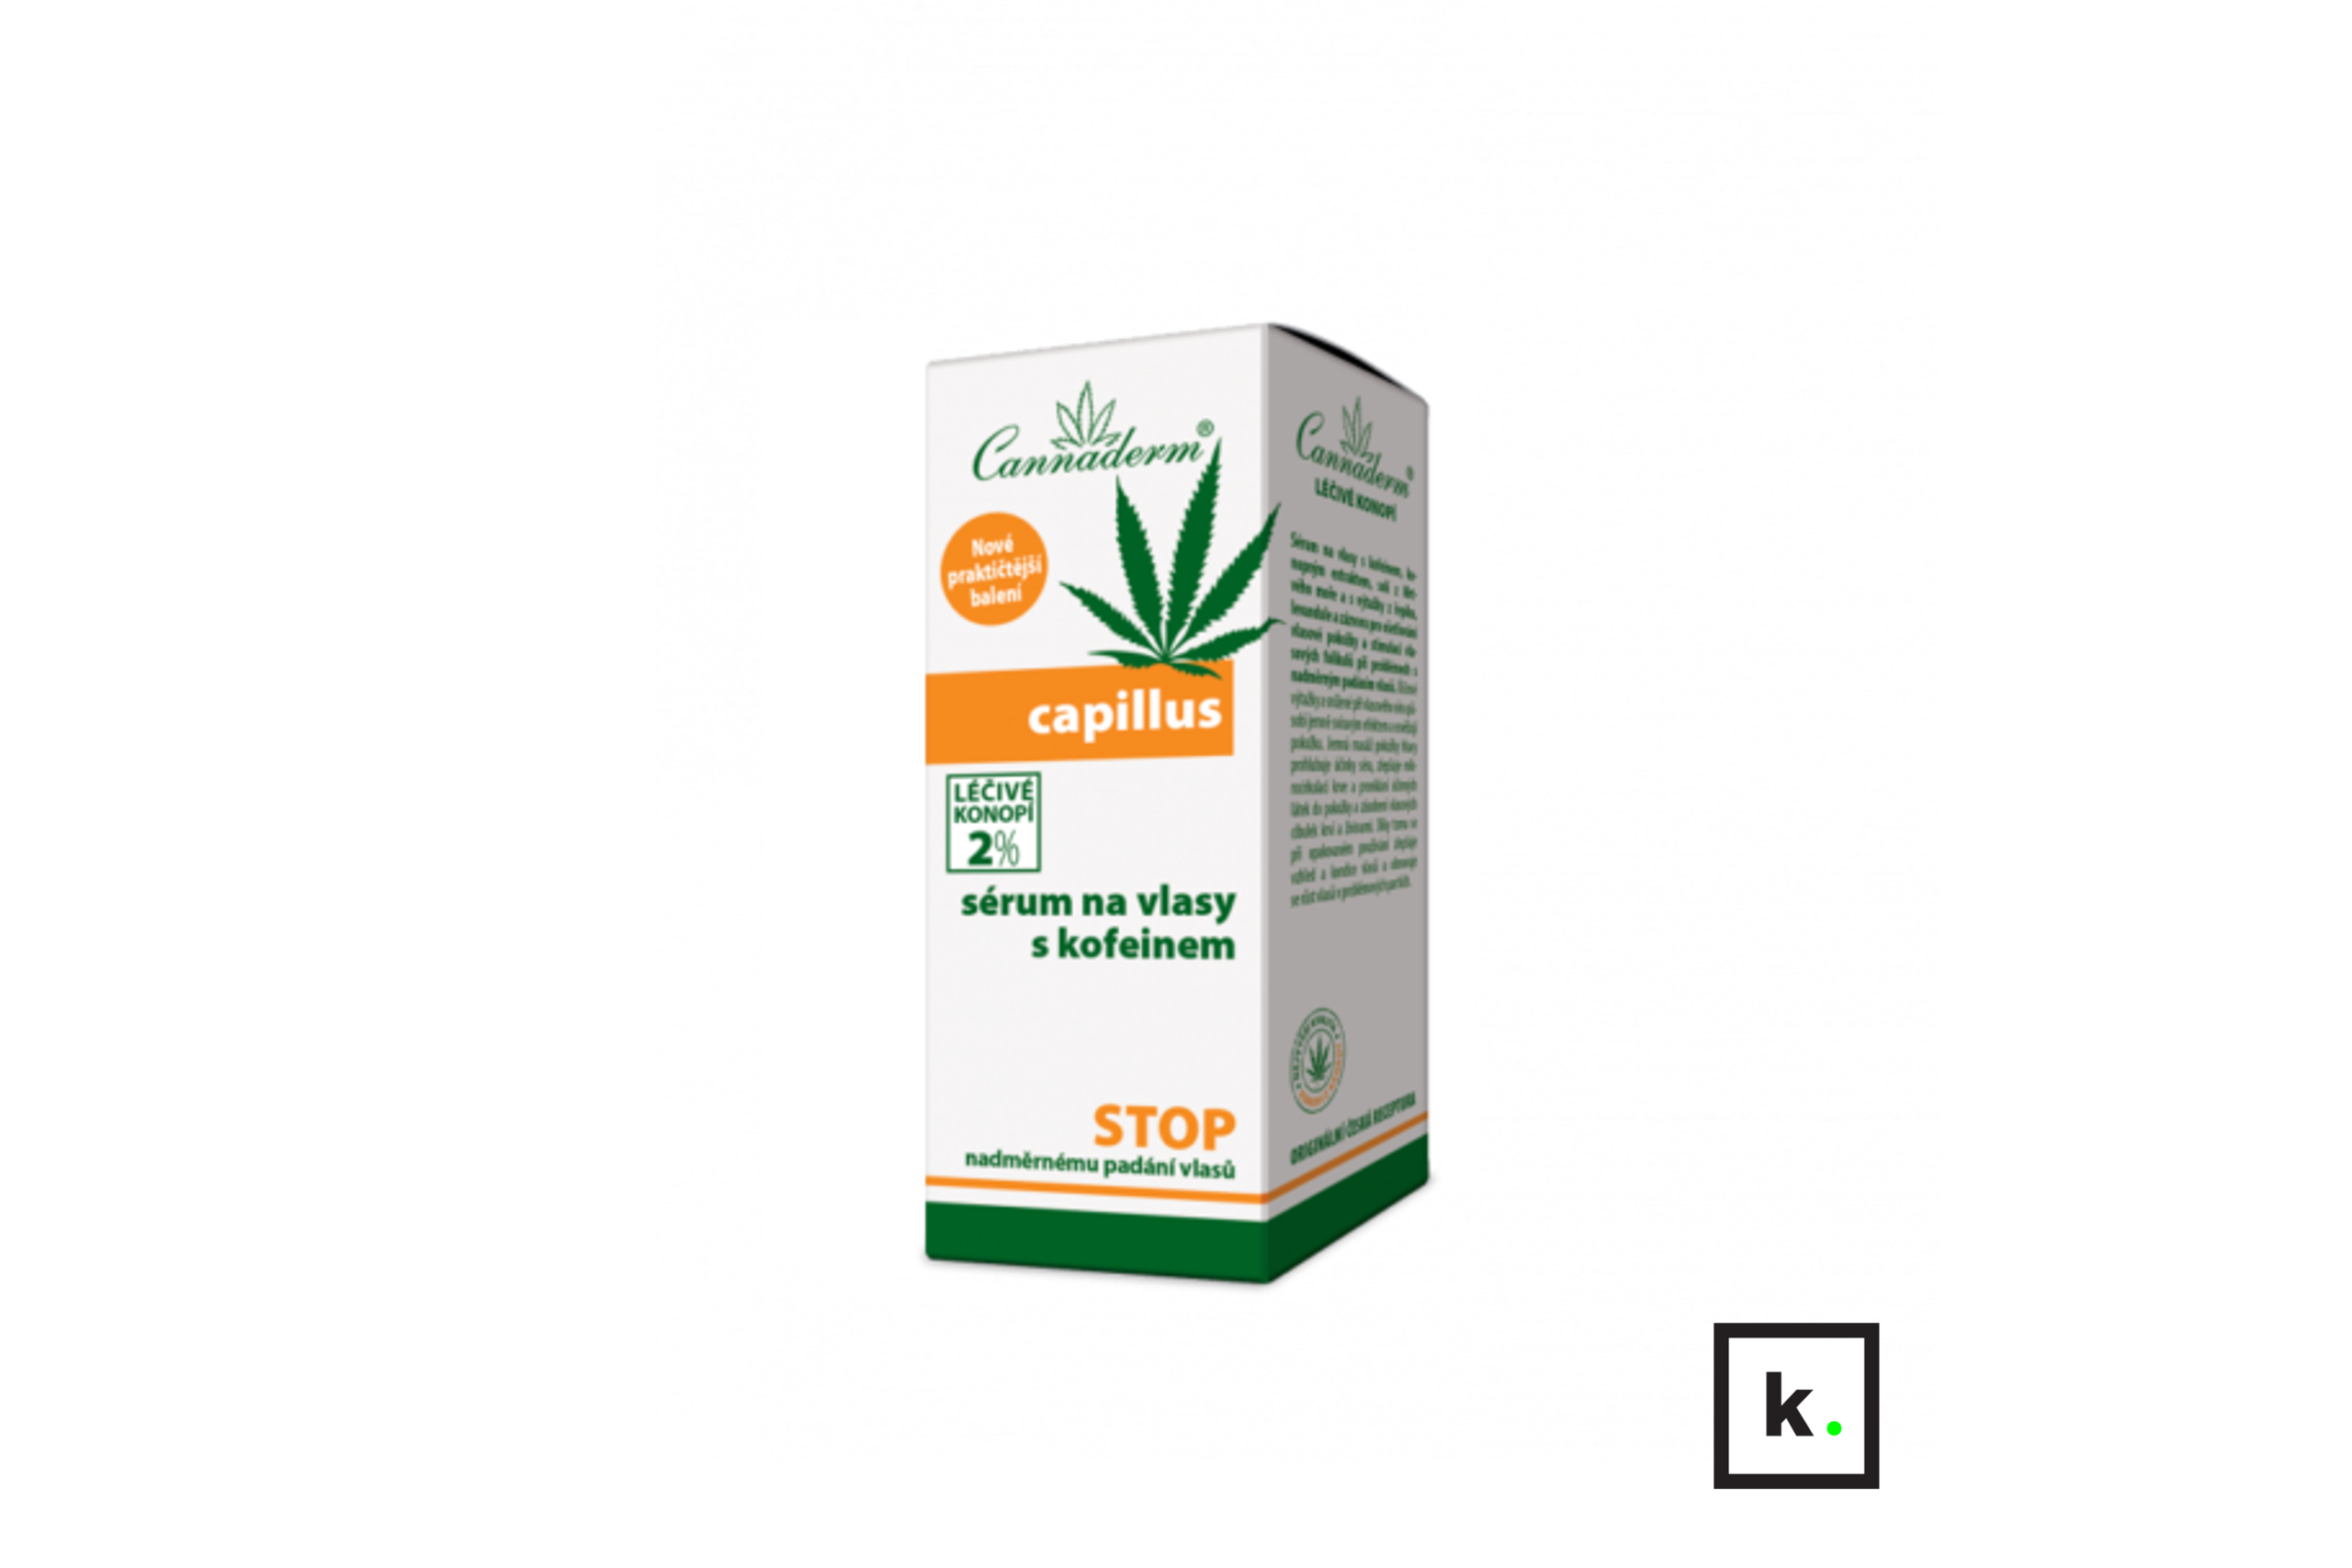 Cannaderm Capillus serum z konopi do włosów z kofeiną - 40 ml